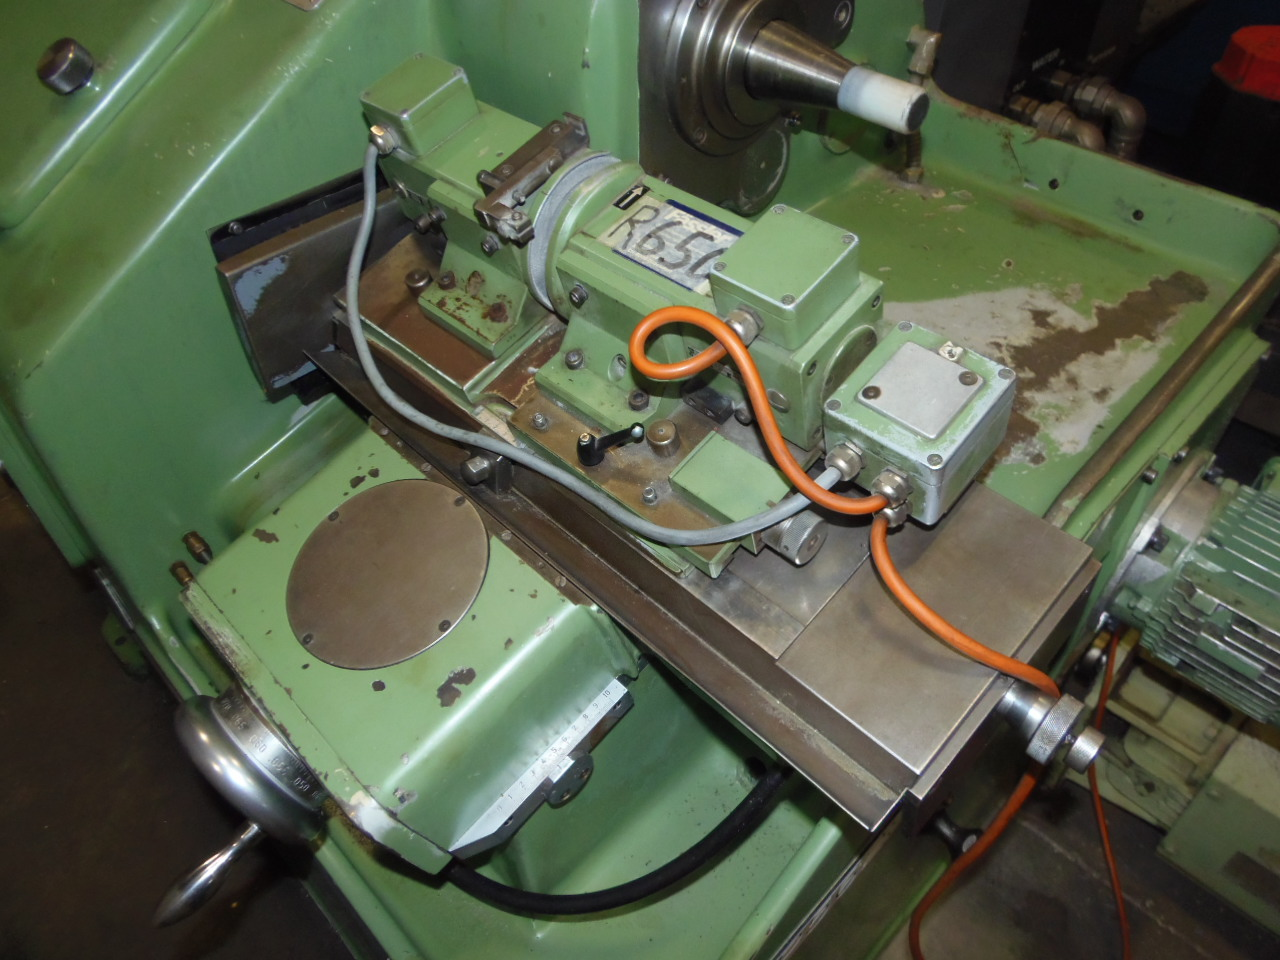 "REISHAUER MODEL AM-10 GRINDING WHEEL DRESSING AND PROFILING MACHINE, 15.75"" GRINDING WORMS, 1966"